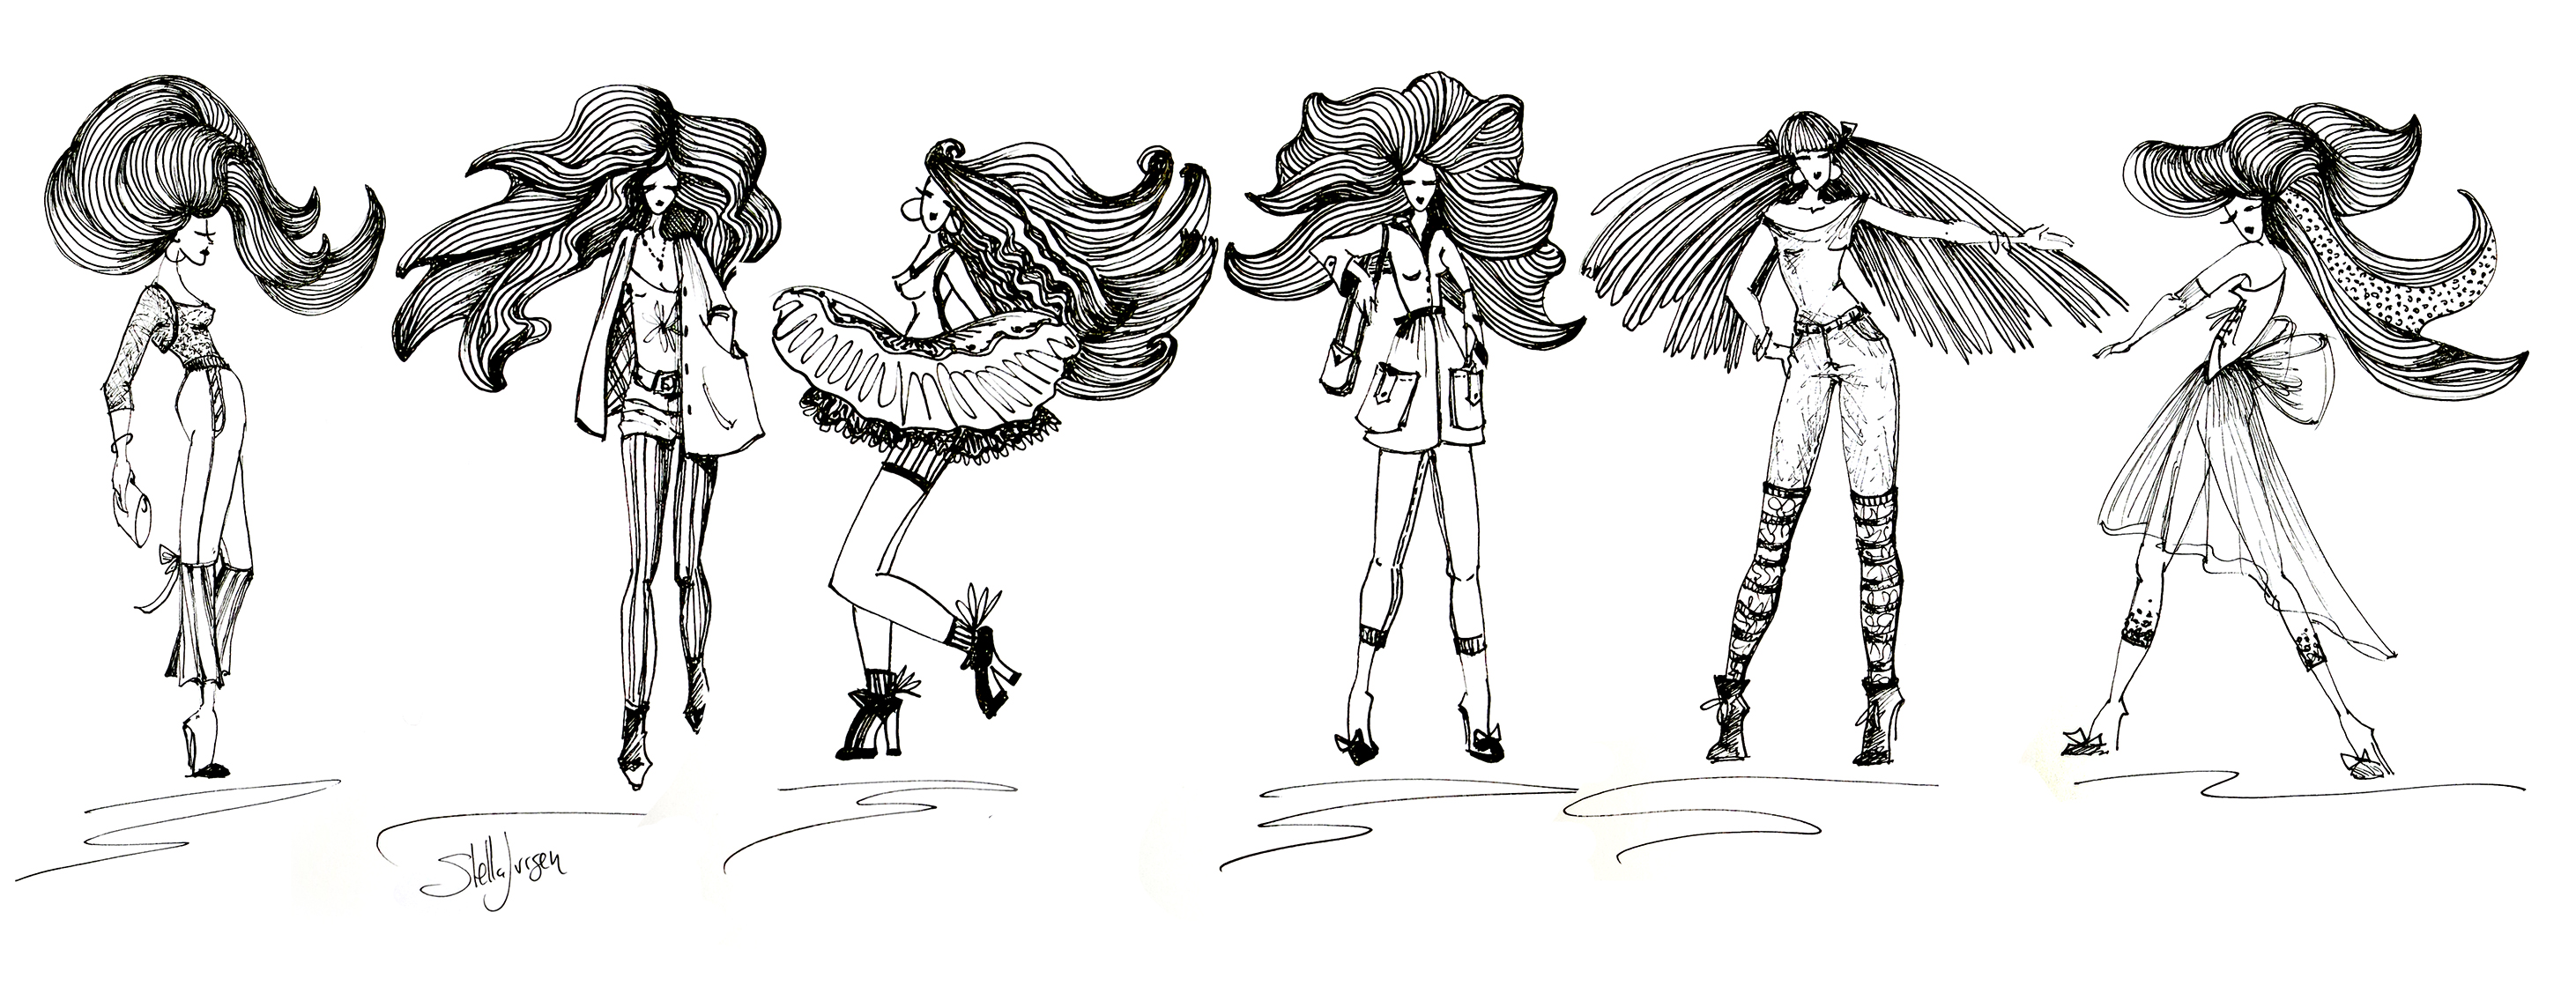 Stella-Jurgen-Fashion-sketches-2medium